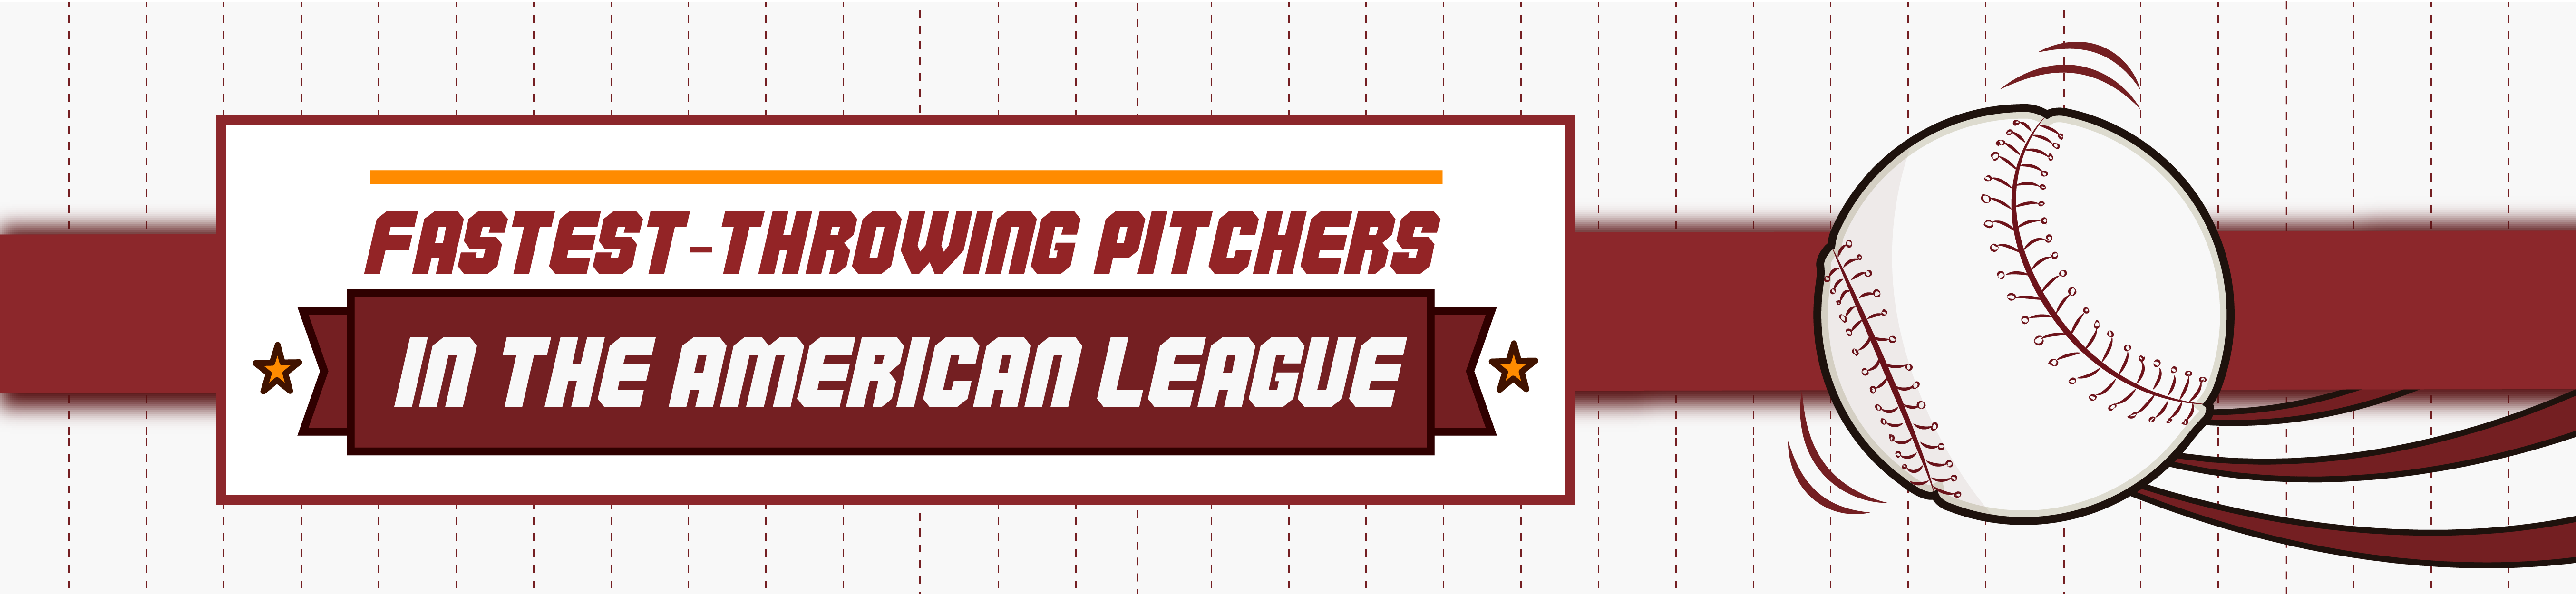 American_League_Pitchers_Header